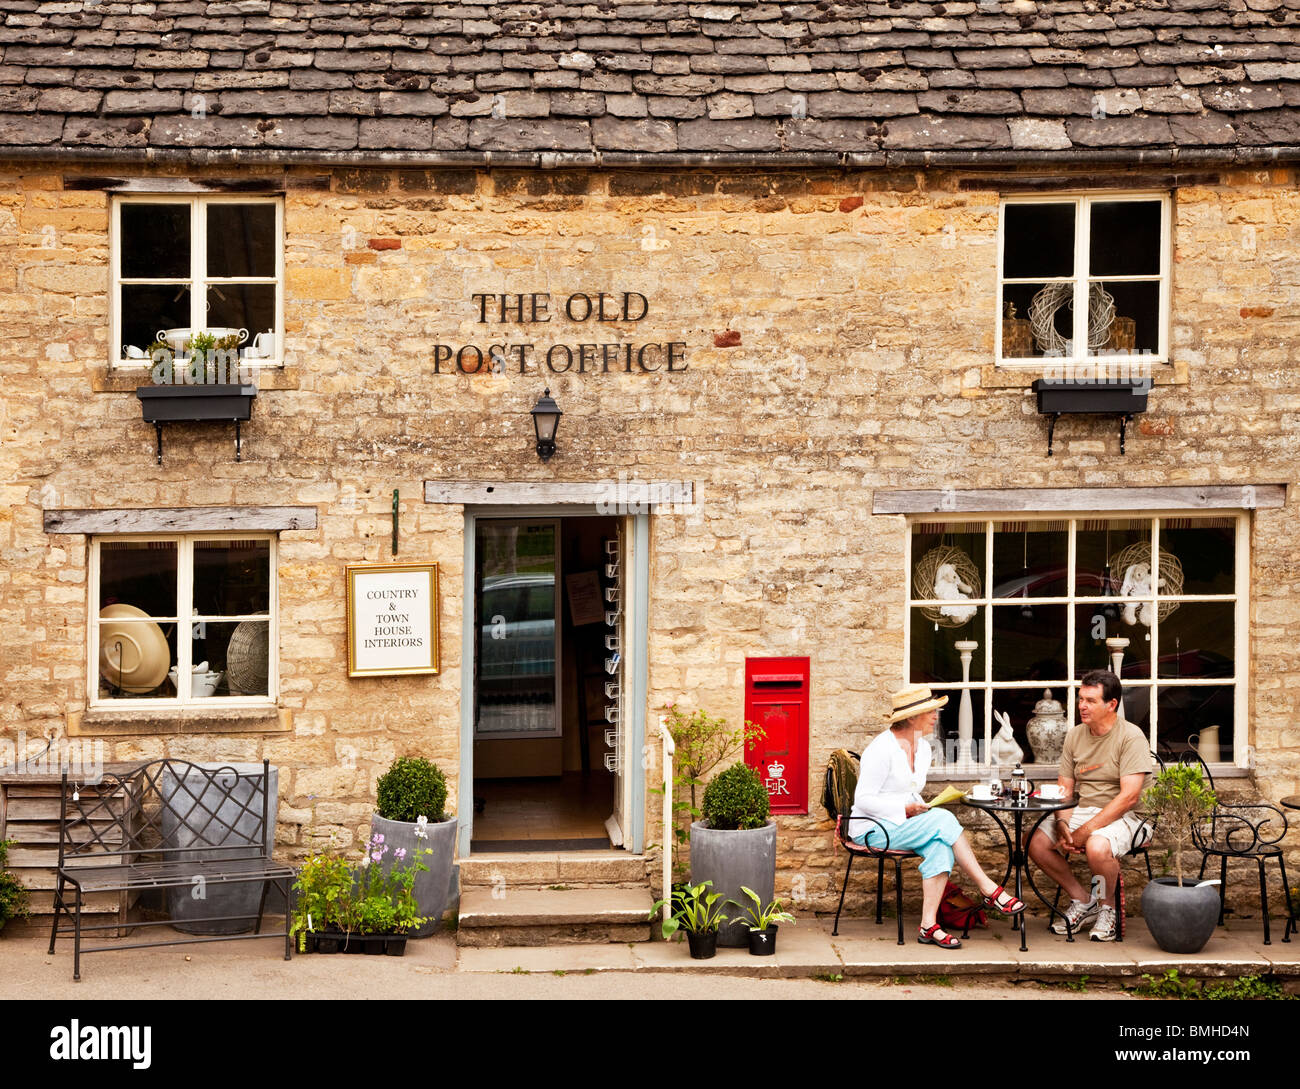 A couple having tea outside the Old Post Office in the Gloucestershire Cotswold village of Guiting Power, England, - Stock Image